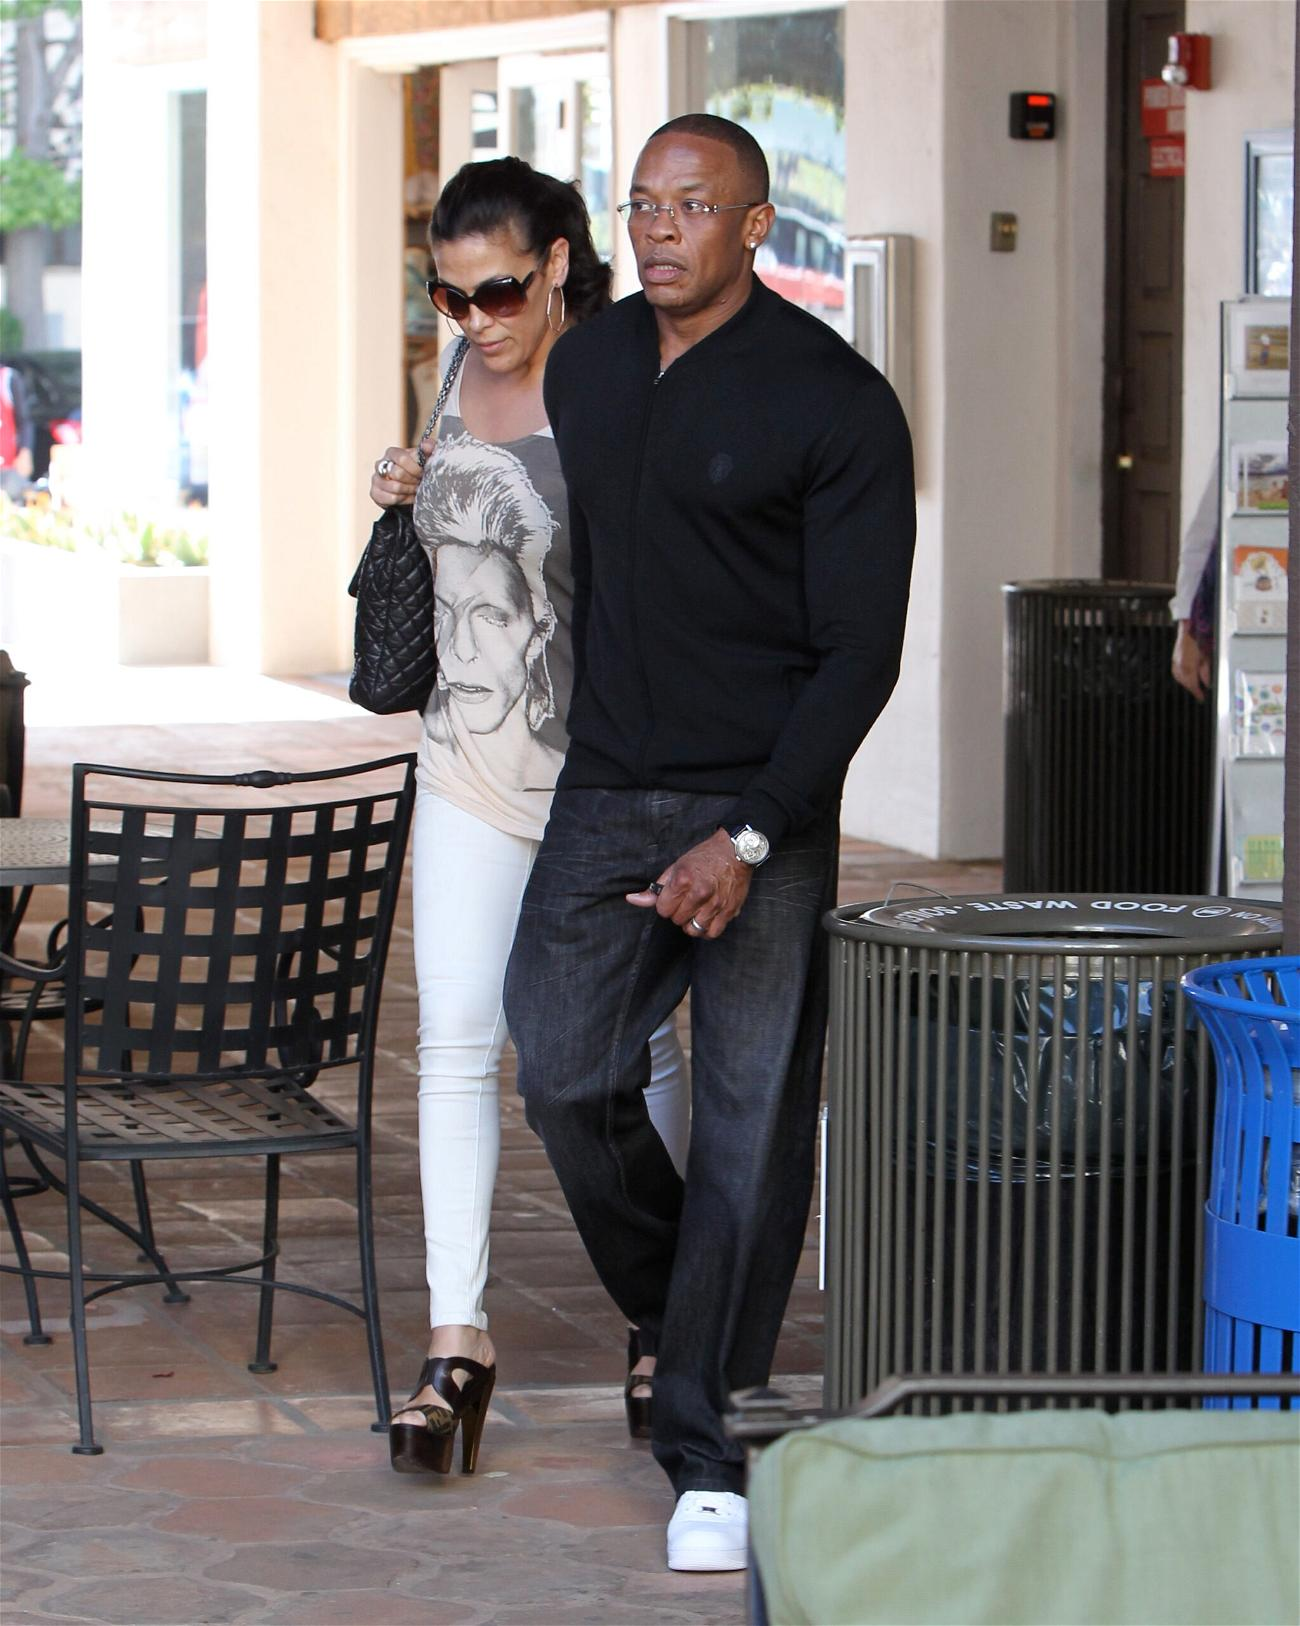 Dr. Dre Ordered To Pay His Wife $3.5 Million A Year In Spousal Support